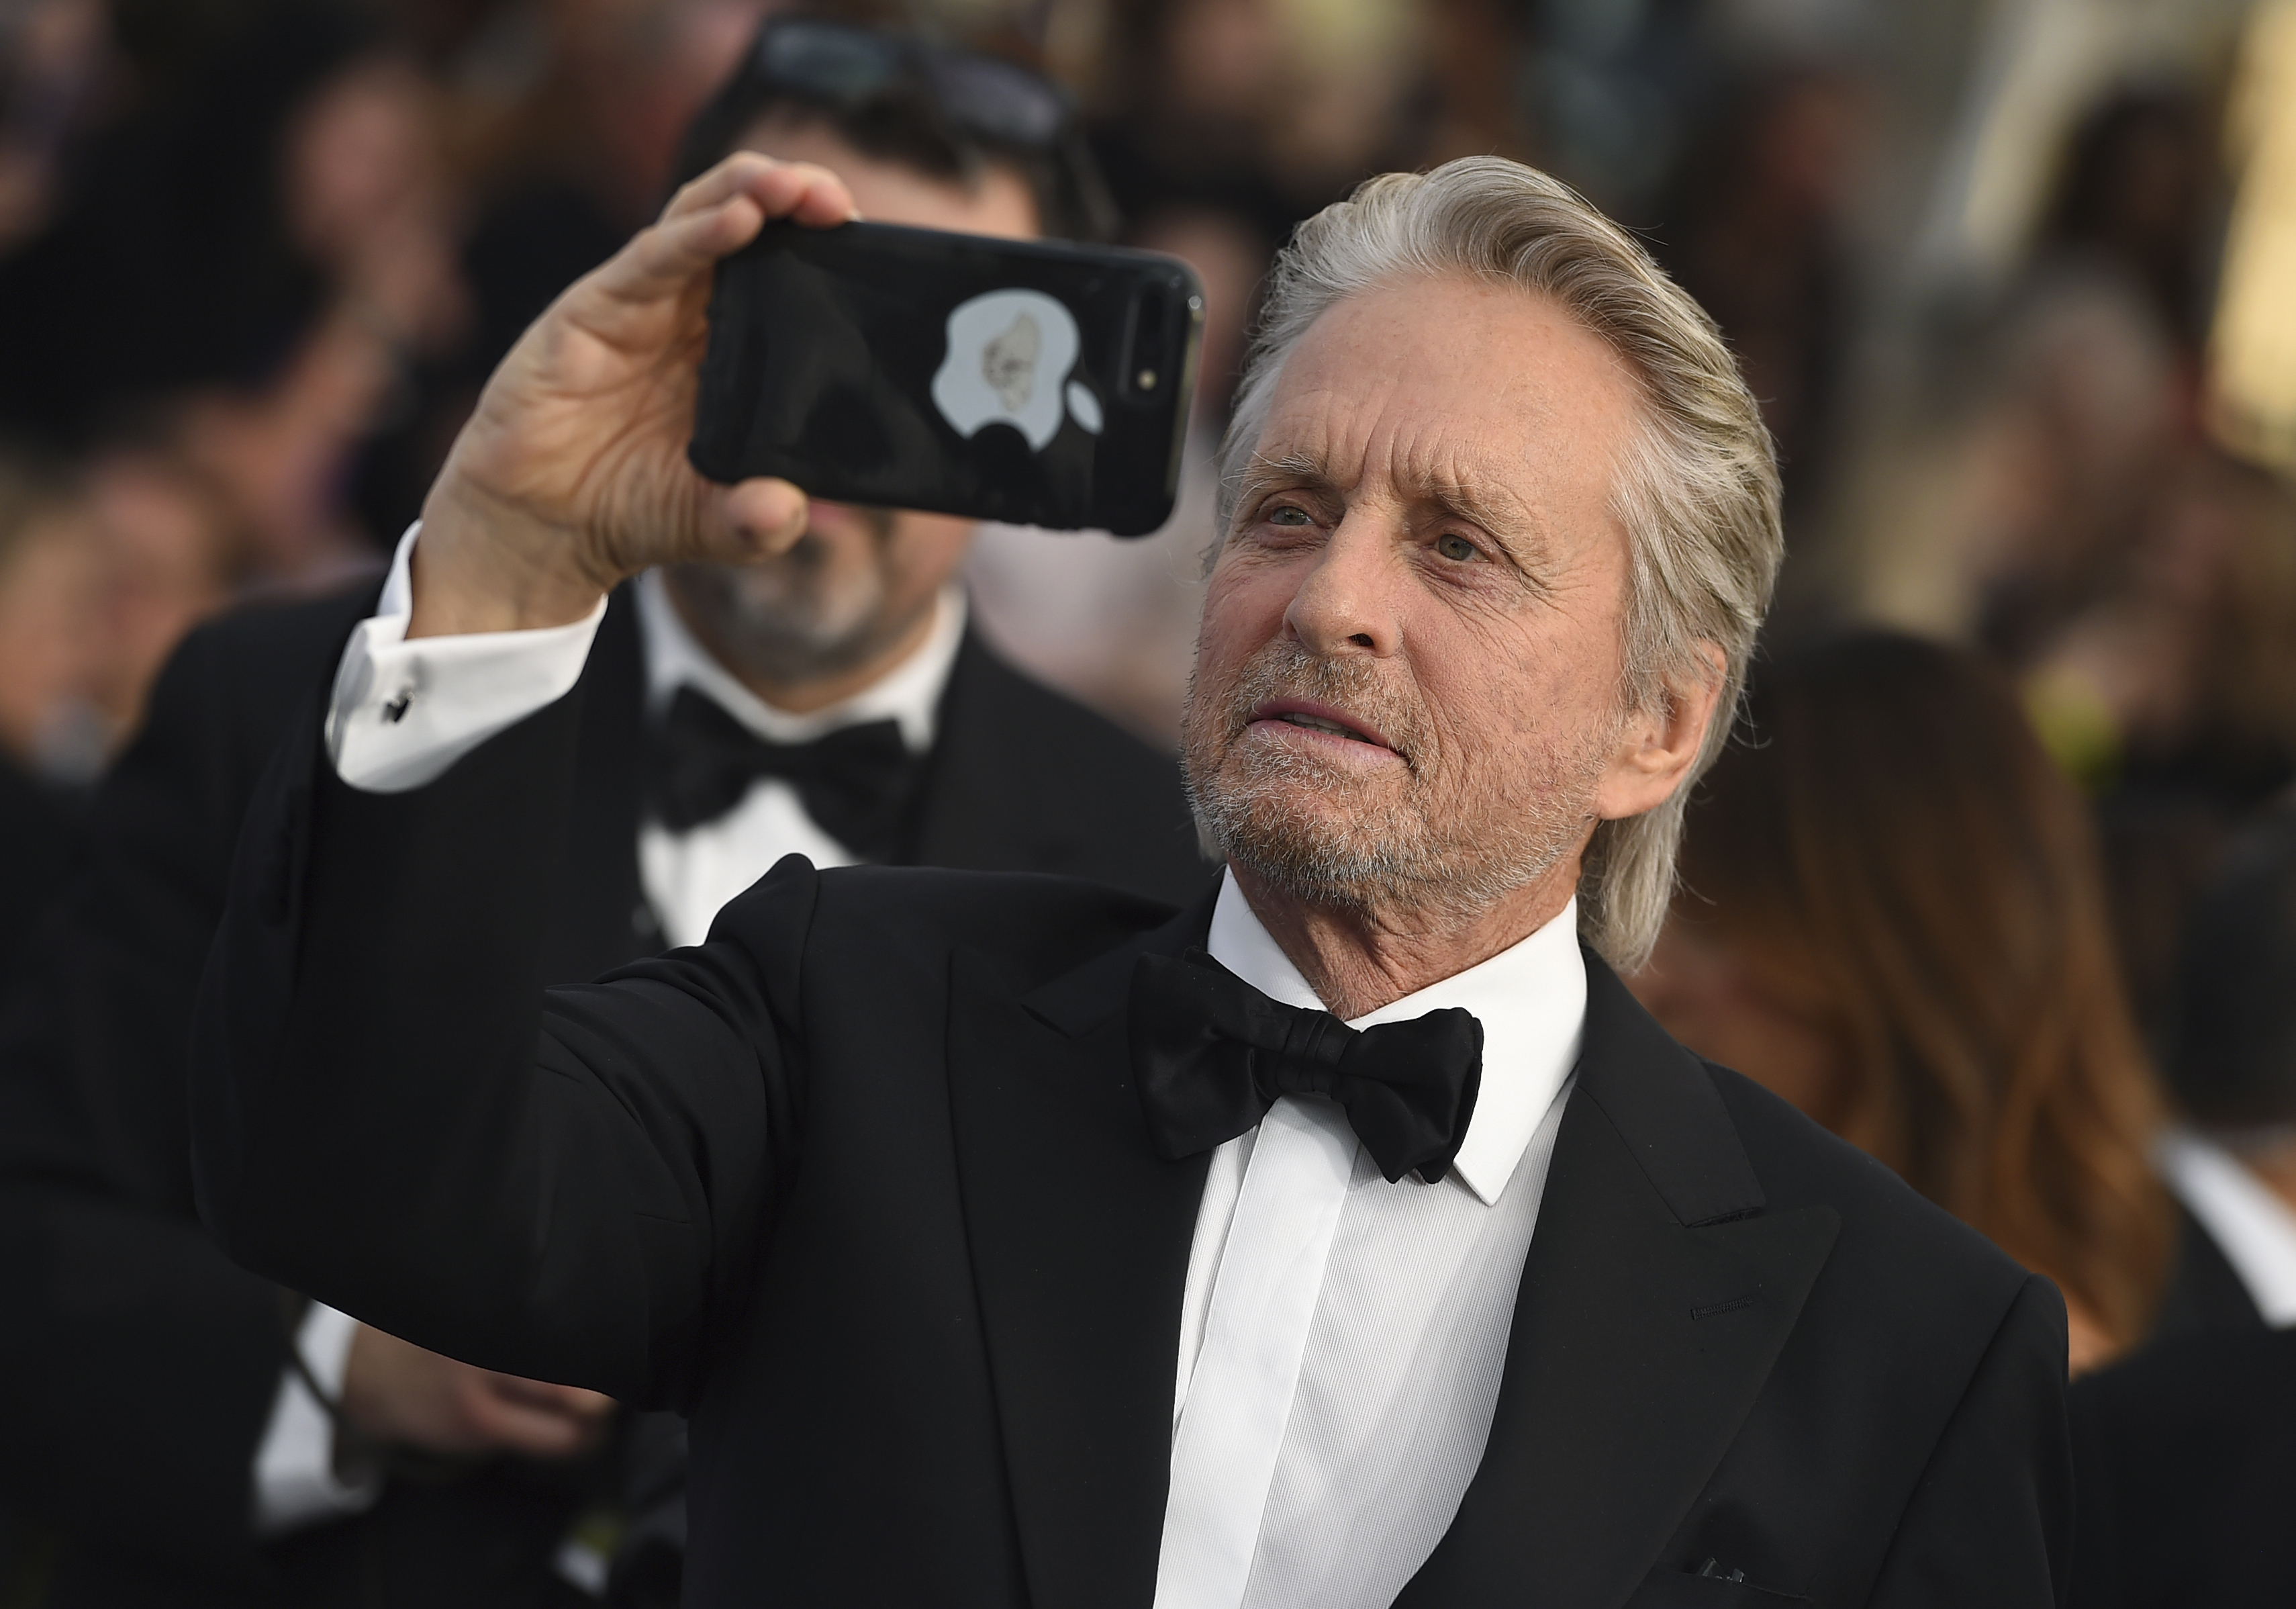 Michael Douglas takes a photo at the 25th annual Screen Actors Guild Awards at the Shrine Auditorium & Expo Hall on Sunday, Jan. 27, 2019, in Los Angeles. (Photo by Jordan Strauss/Invision/AP)